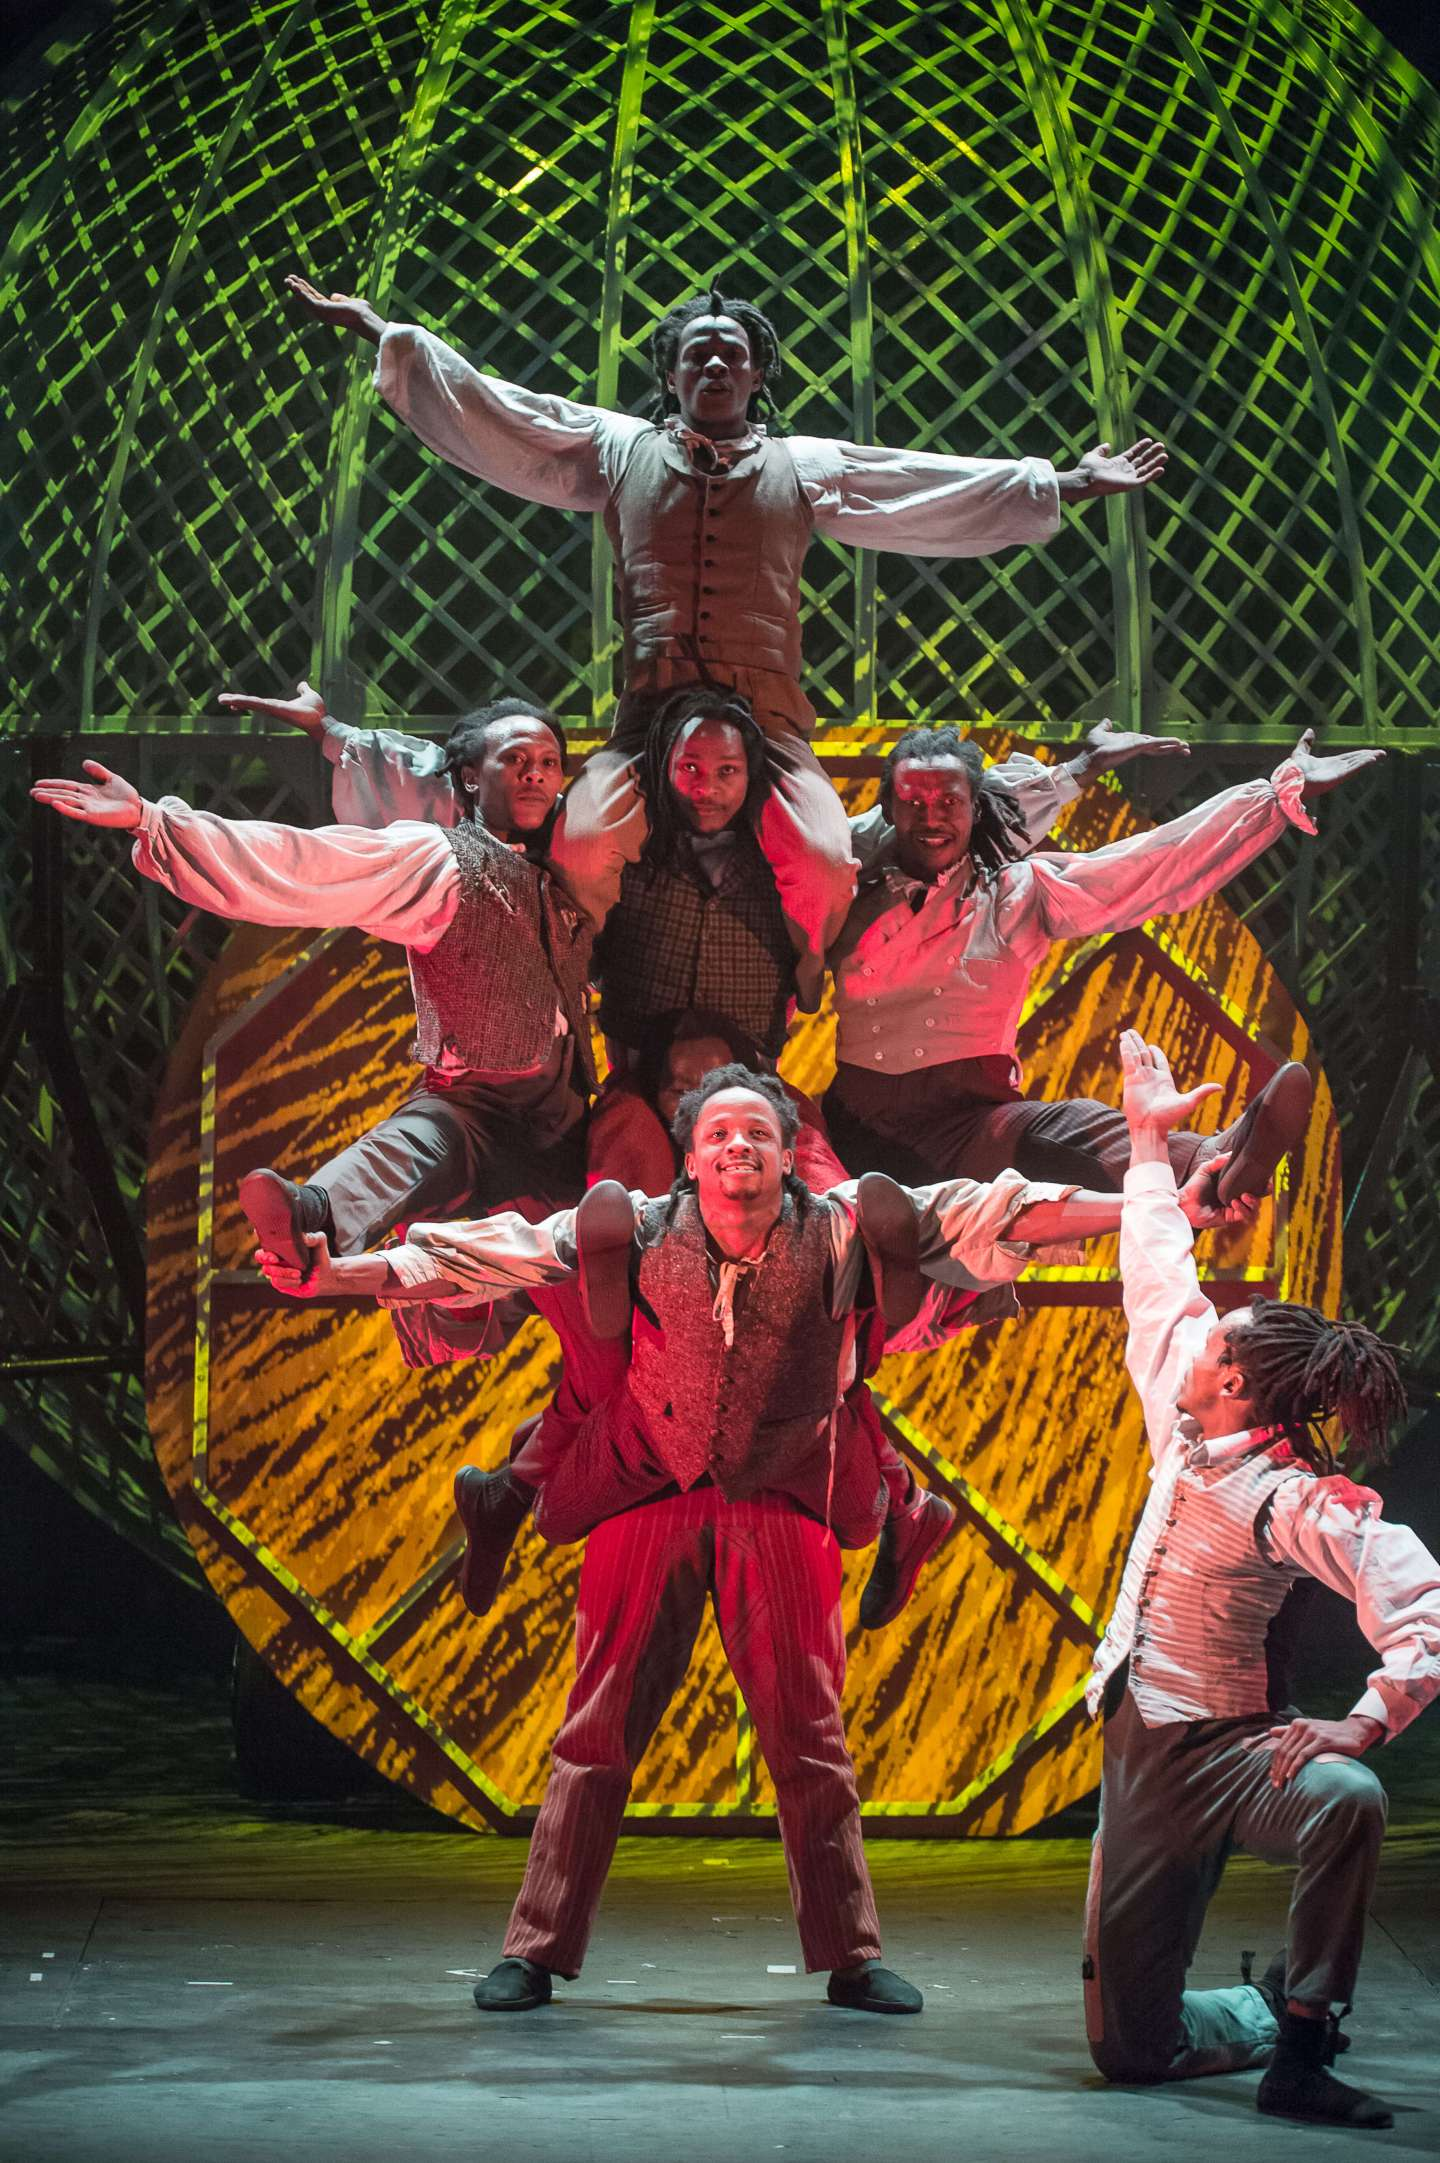 Cirque Berserk, celebrating 250 years of circus